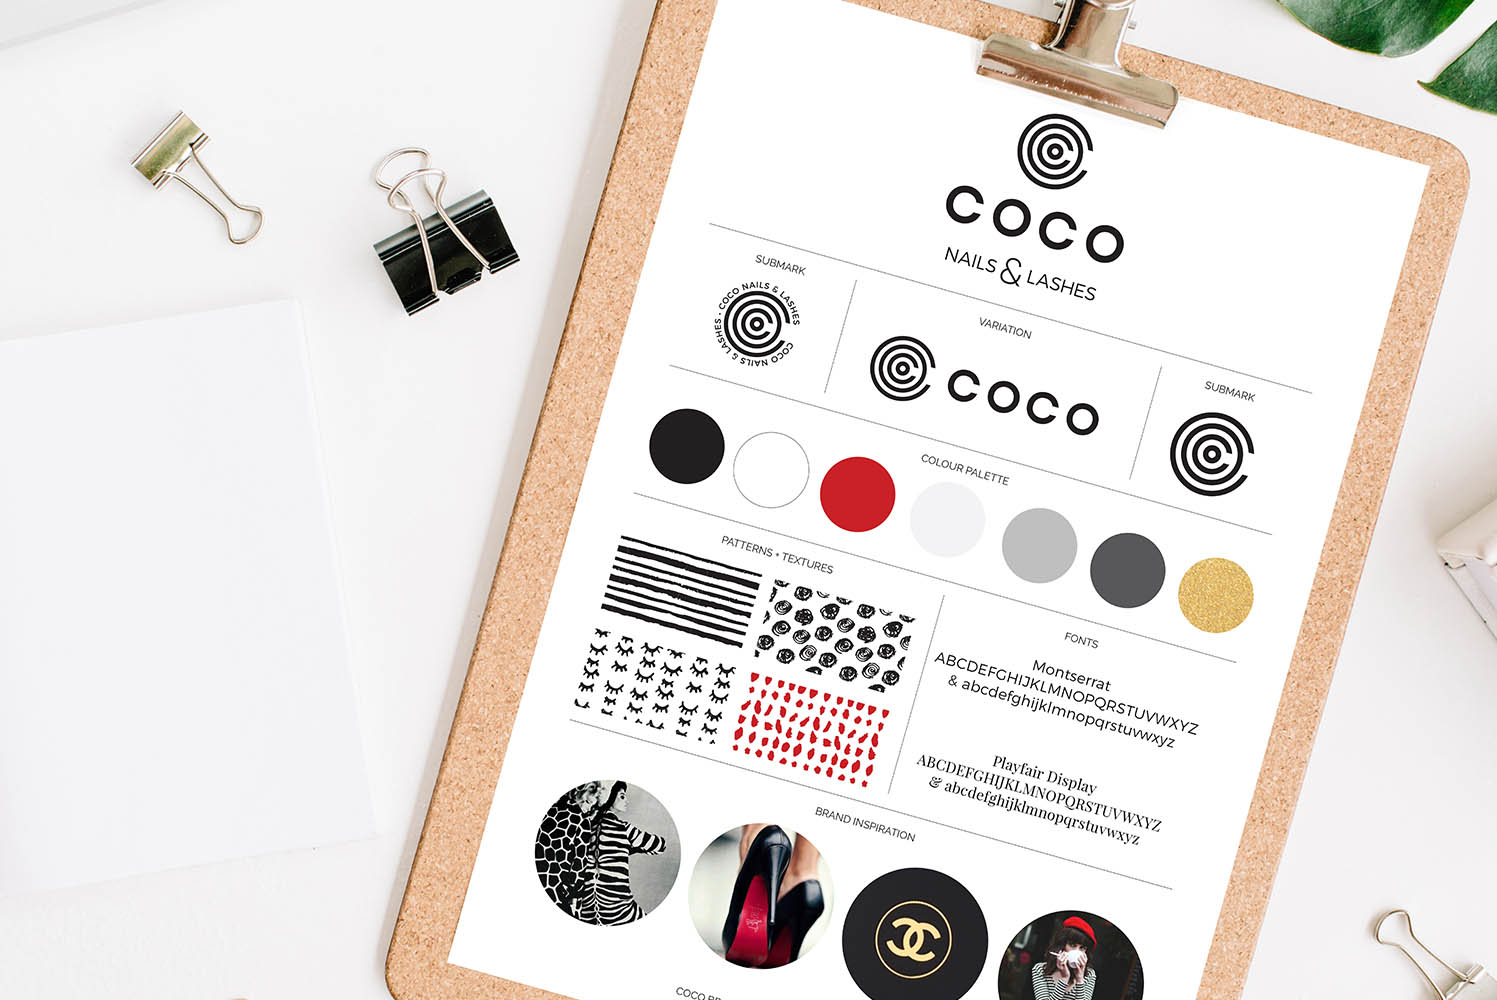 Portfolio project: Coco brand board | Beehive Green Design Studio